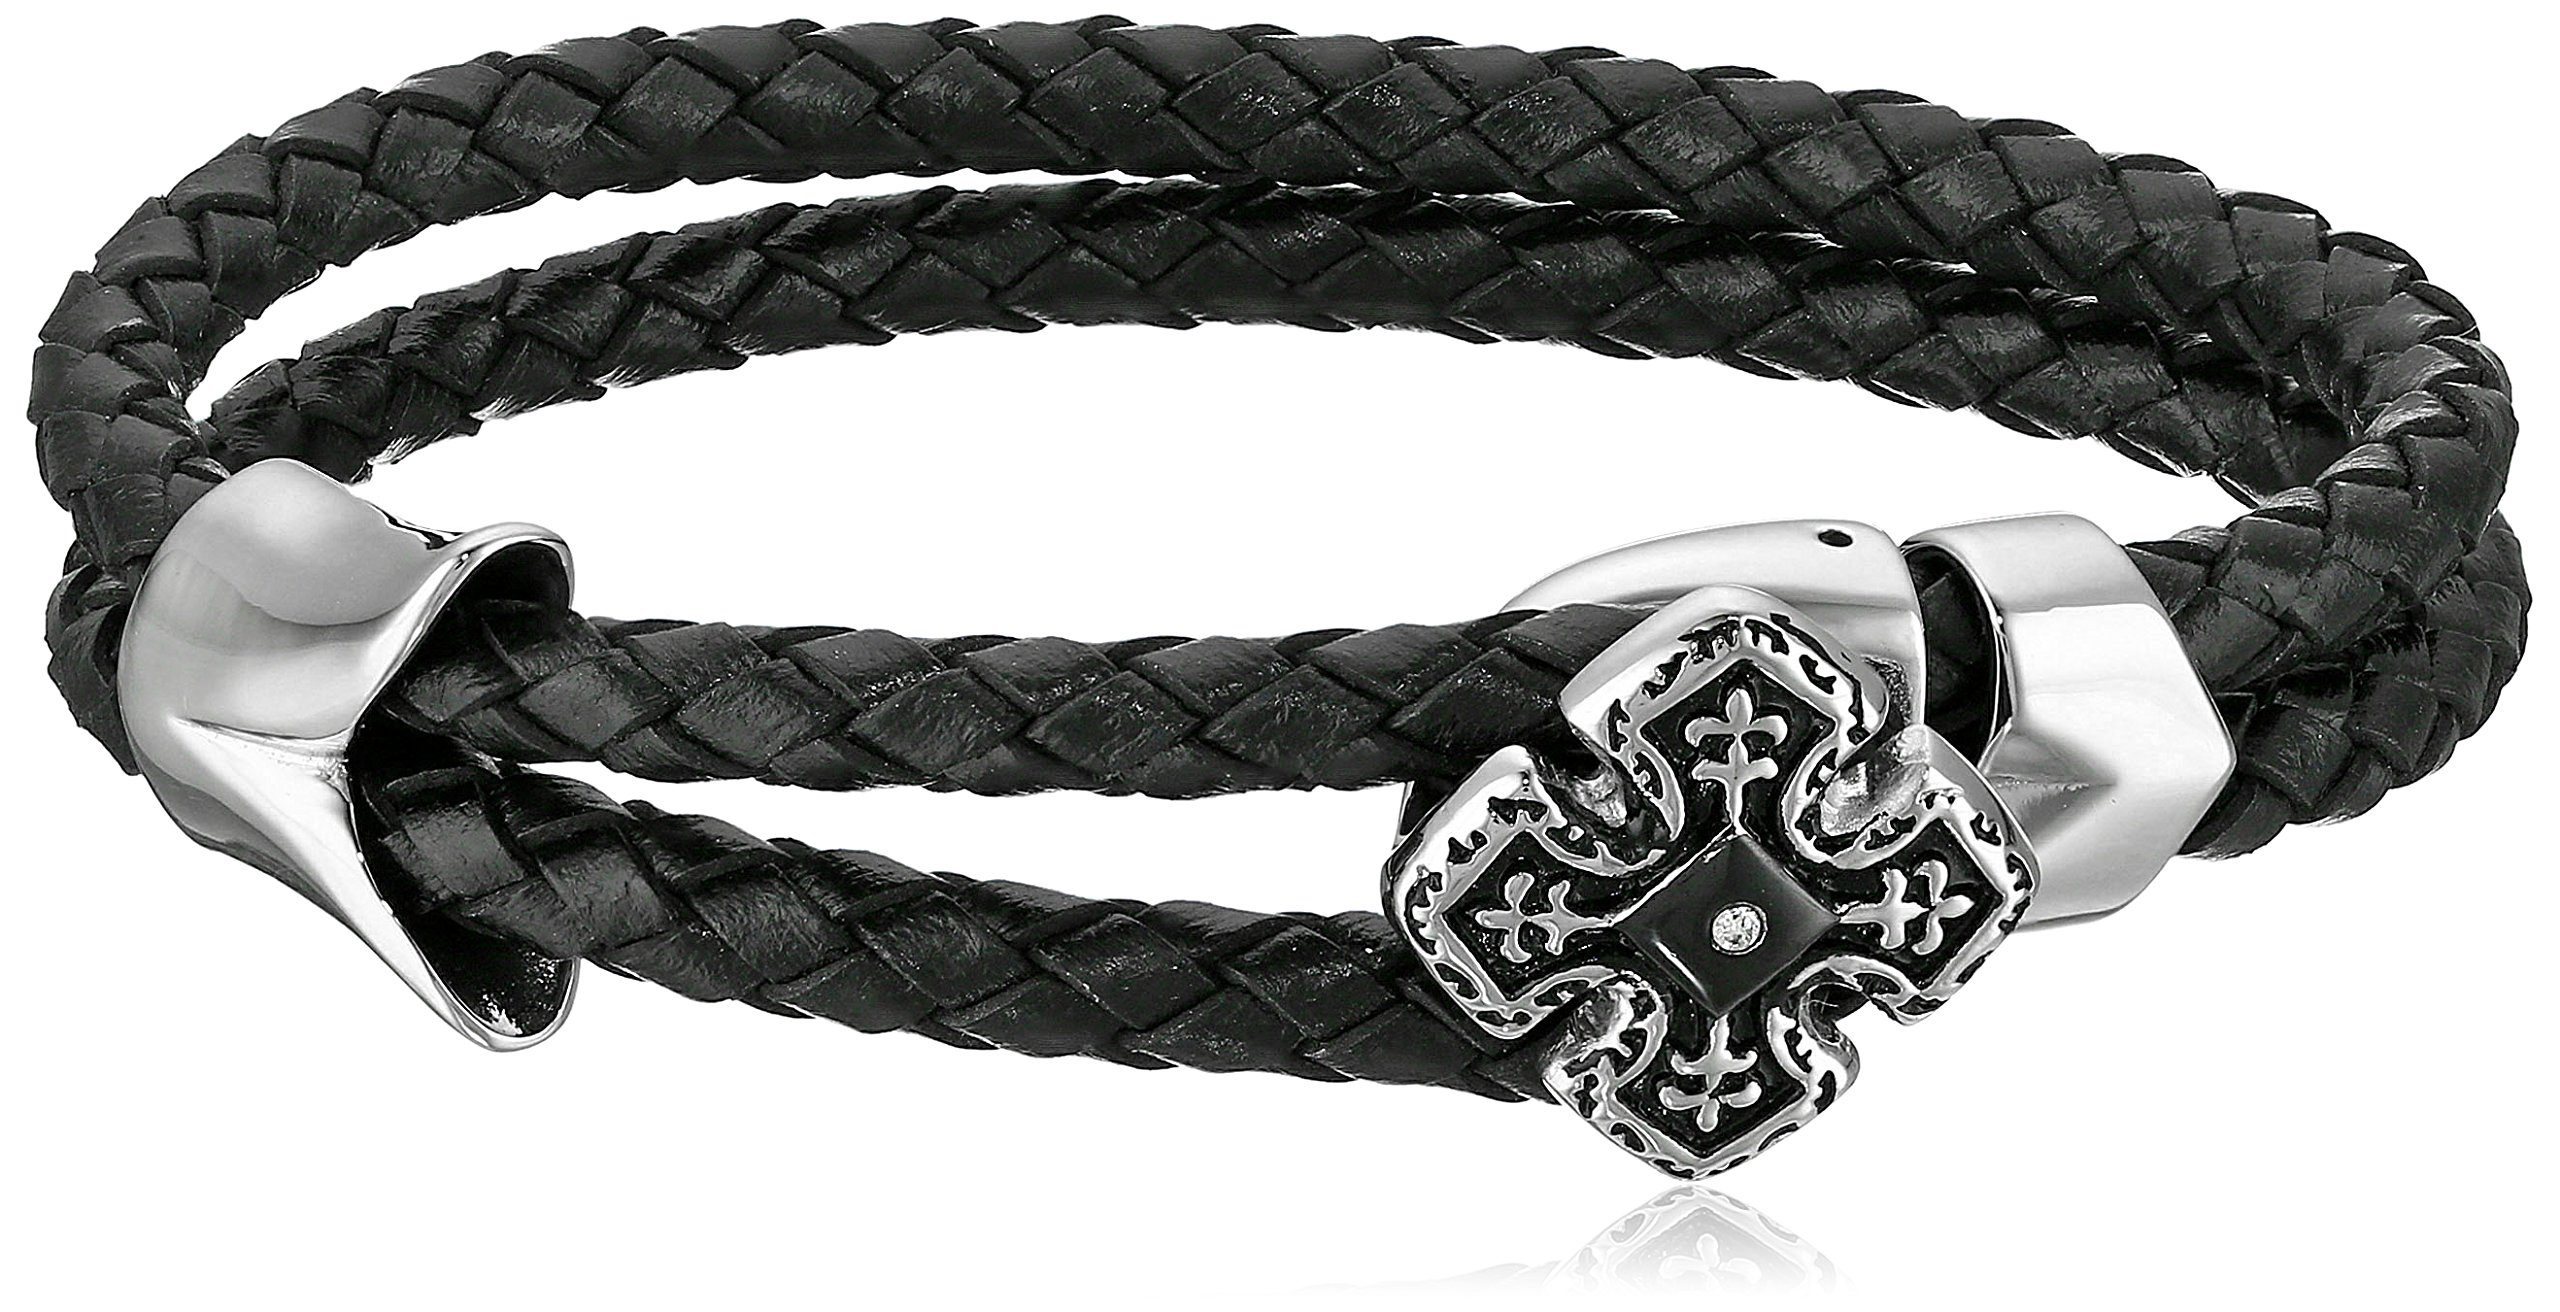 Cold Steel Stainless Steel with Black Leather and Diamond Wrap Bracelet